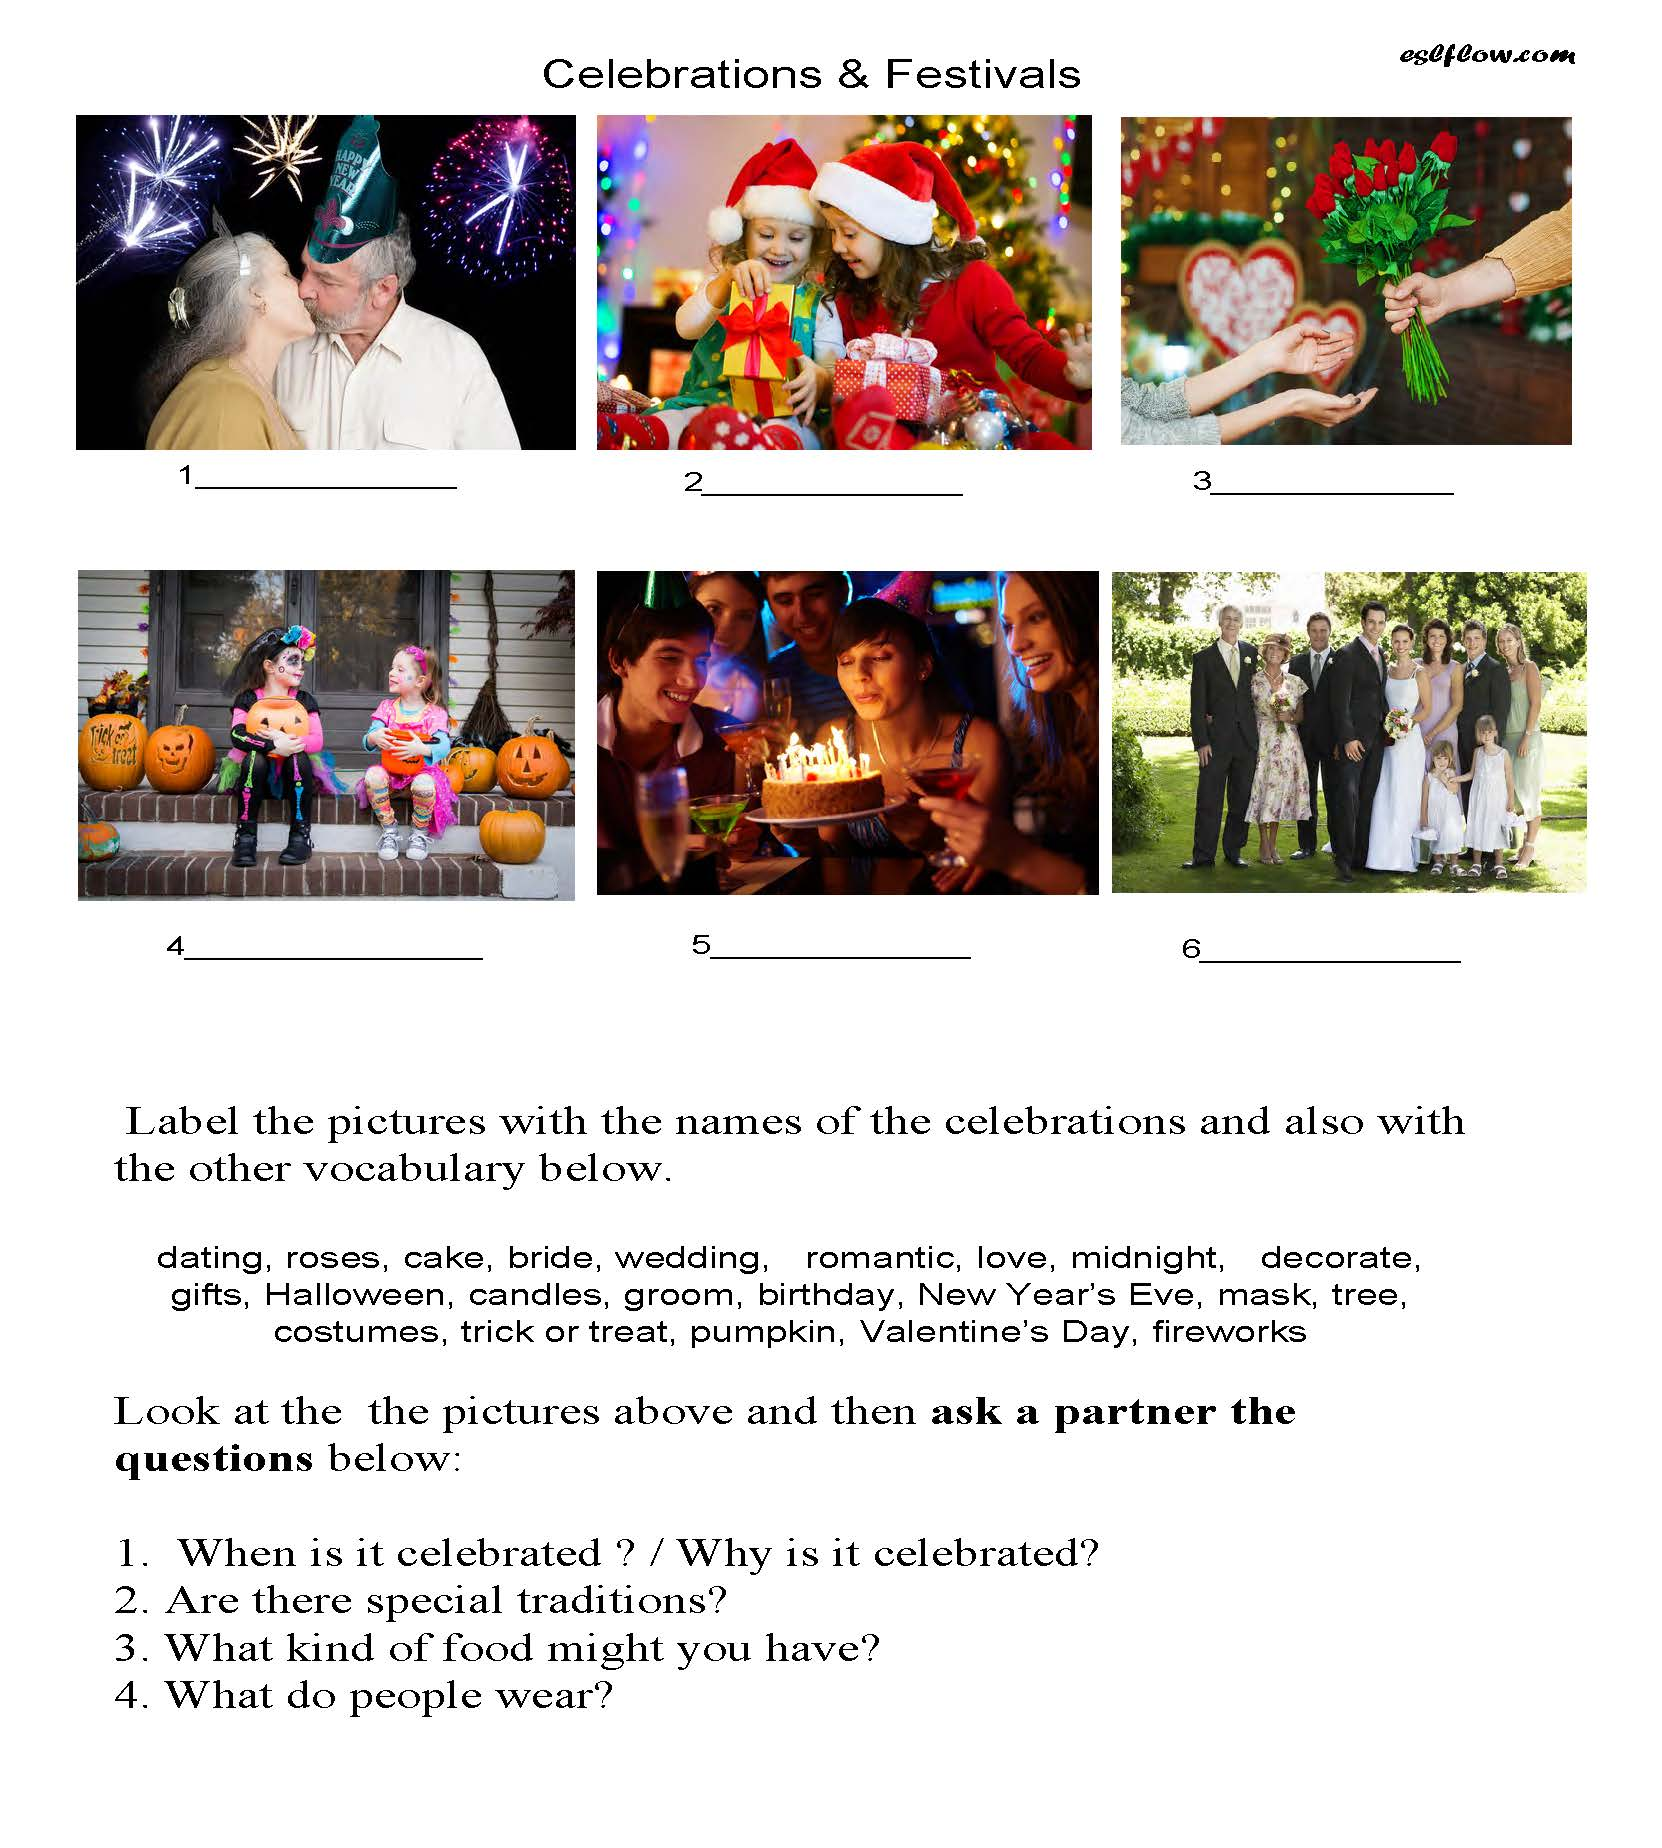 Celebrations and festivals vocabulary and speaking lesson.